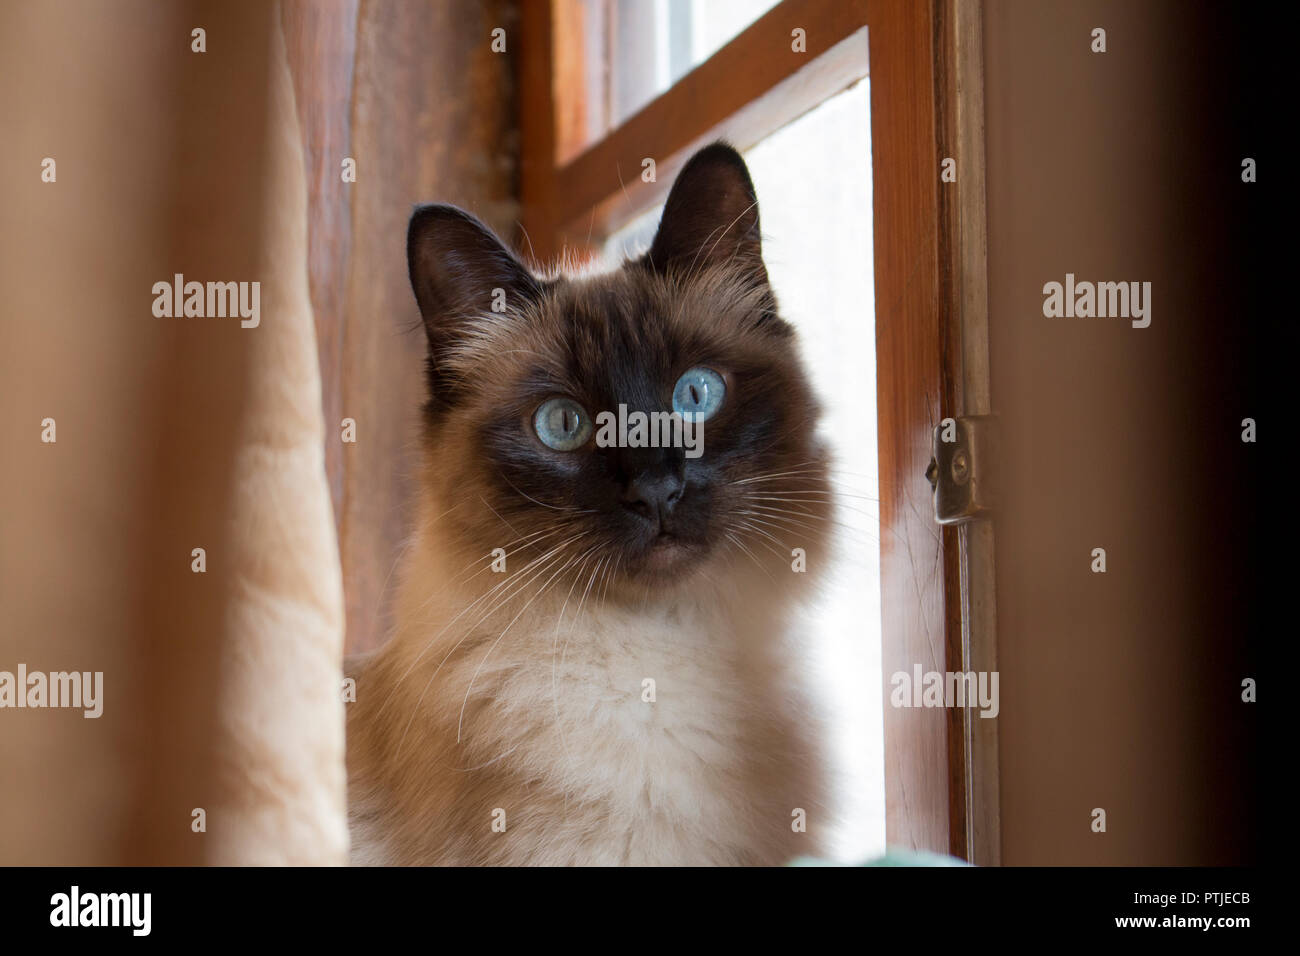 Adorable siamese cat with perfectly round blue eyes looking surprised and intrigued, next to rustic wooden window. - Stock Image